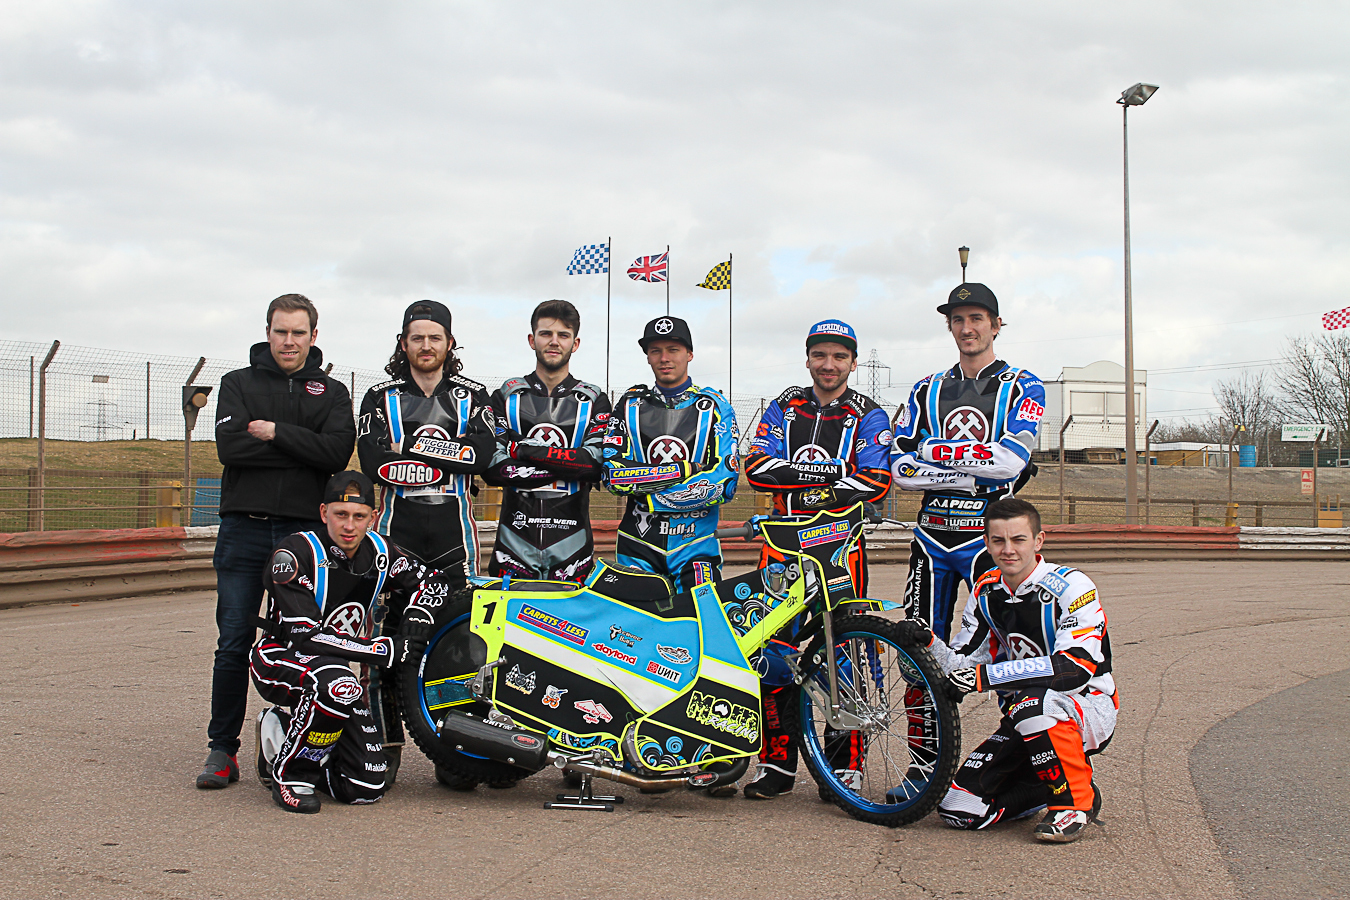 End of an era - Lakeside Hammers Picture: SHANE CHITTOCK